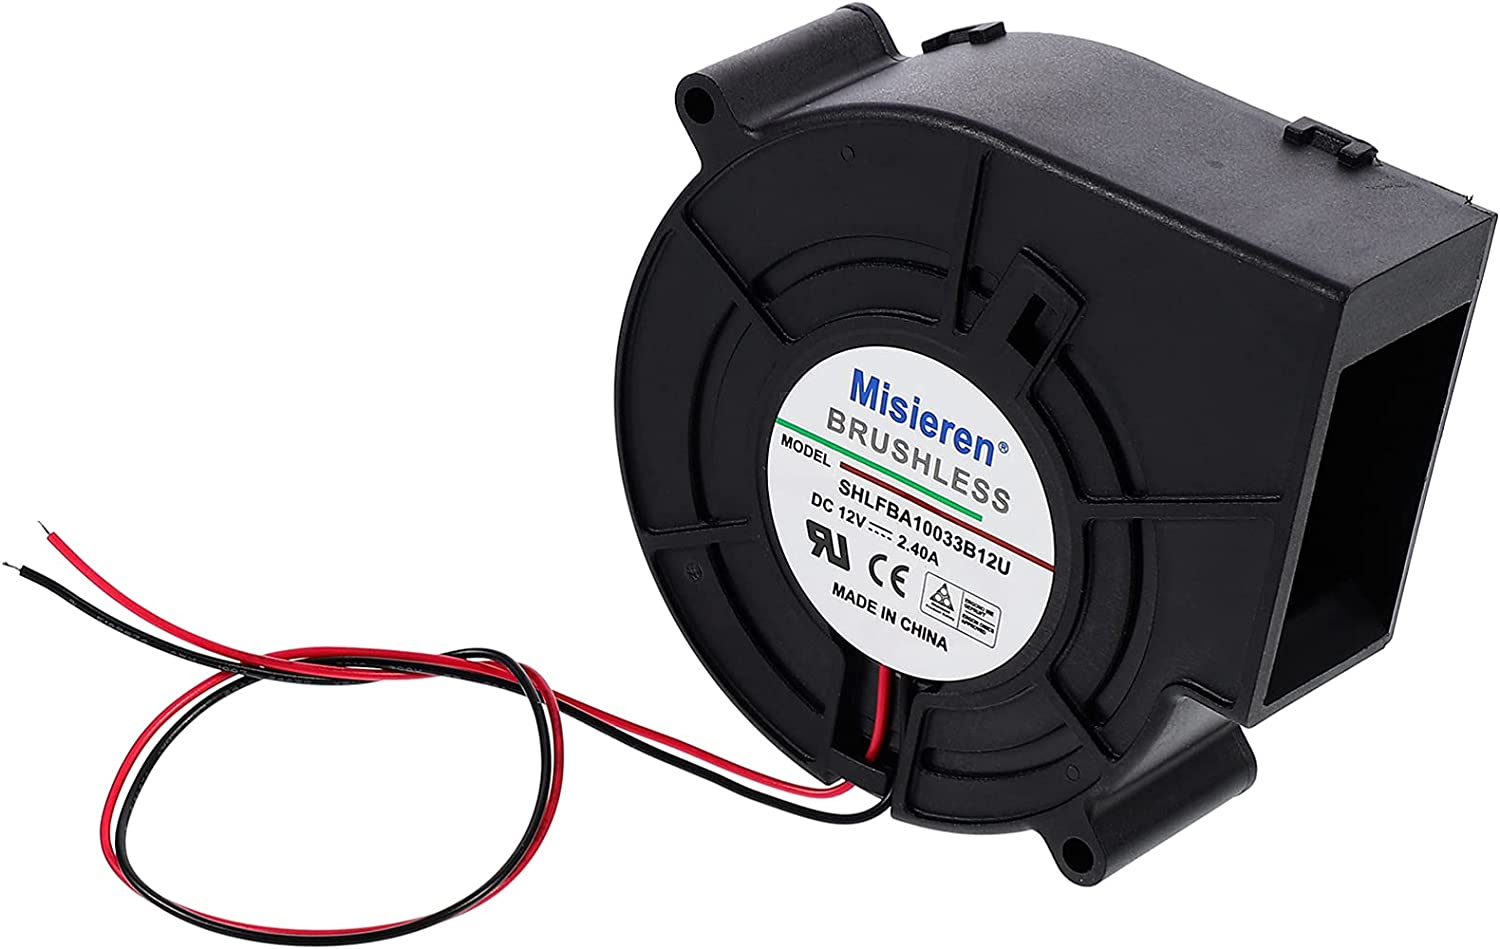 SOLUSTRE 2. 4A Furnace DC Cooling Max 49% OFF High Rotation Cool Air 12V SEAL limited product Fan